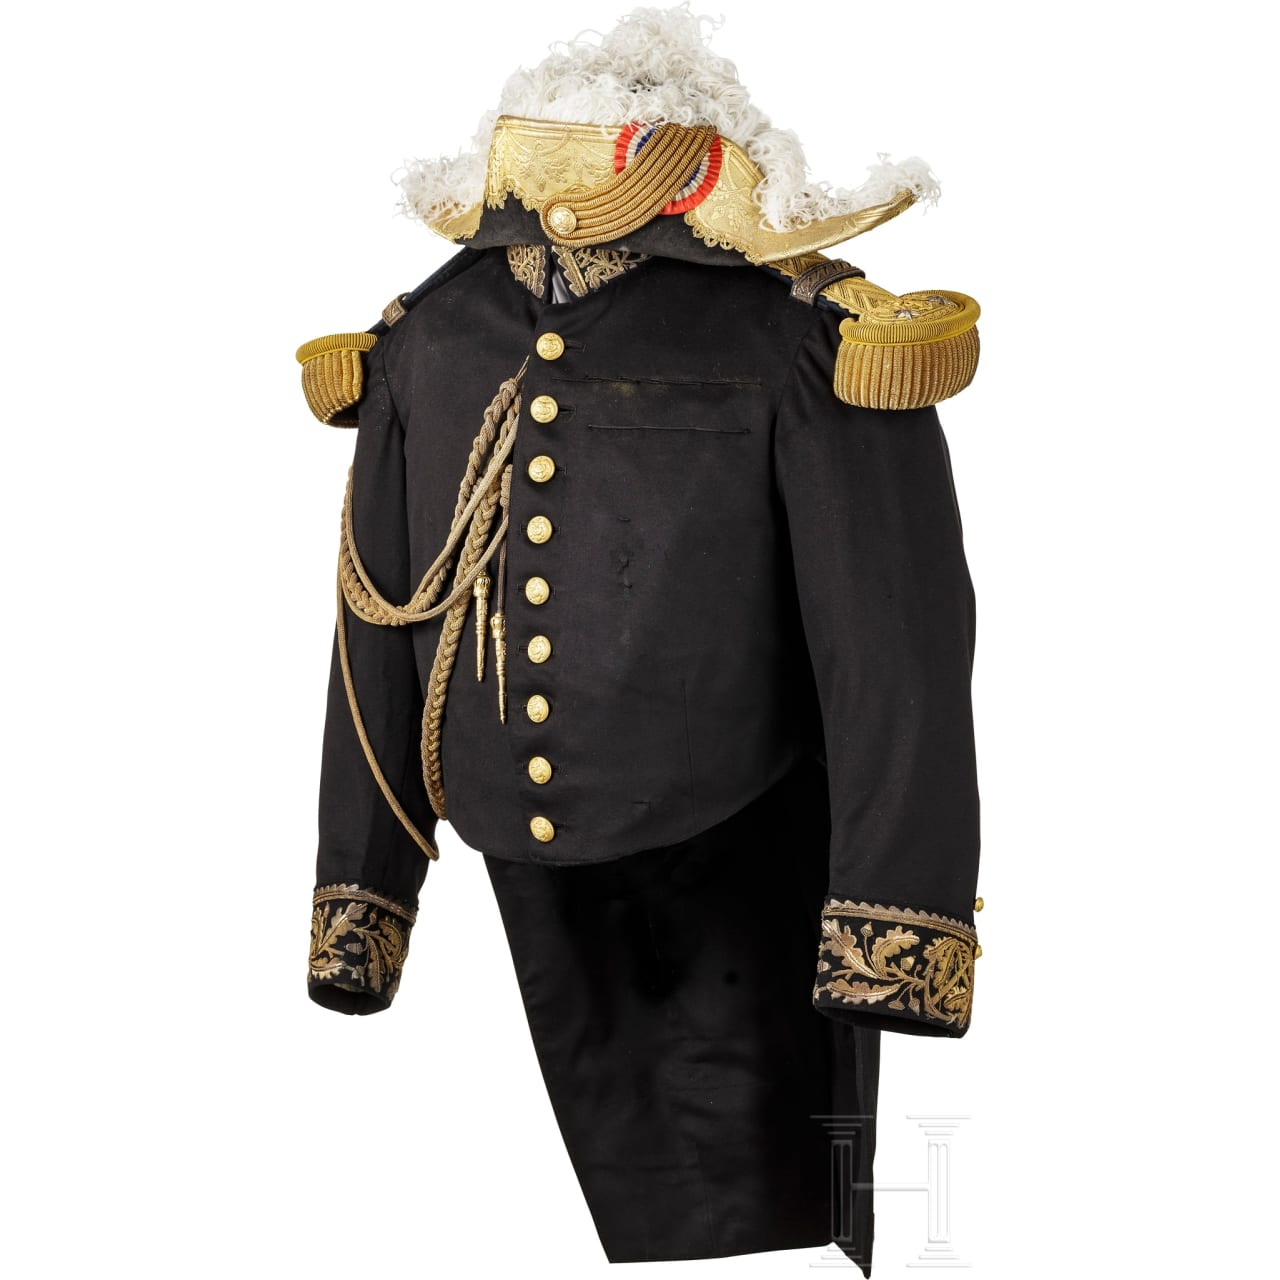 A Rear Admiral's uniform of the French Navy, ca. 1900